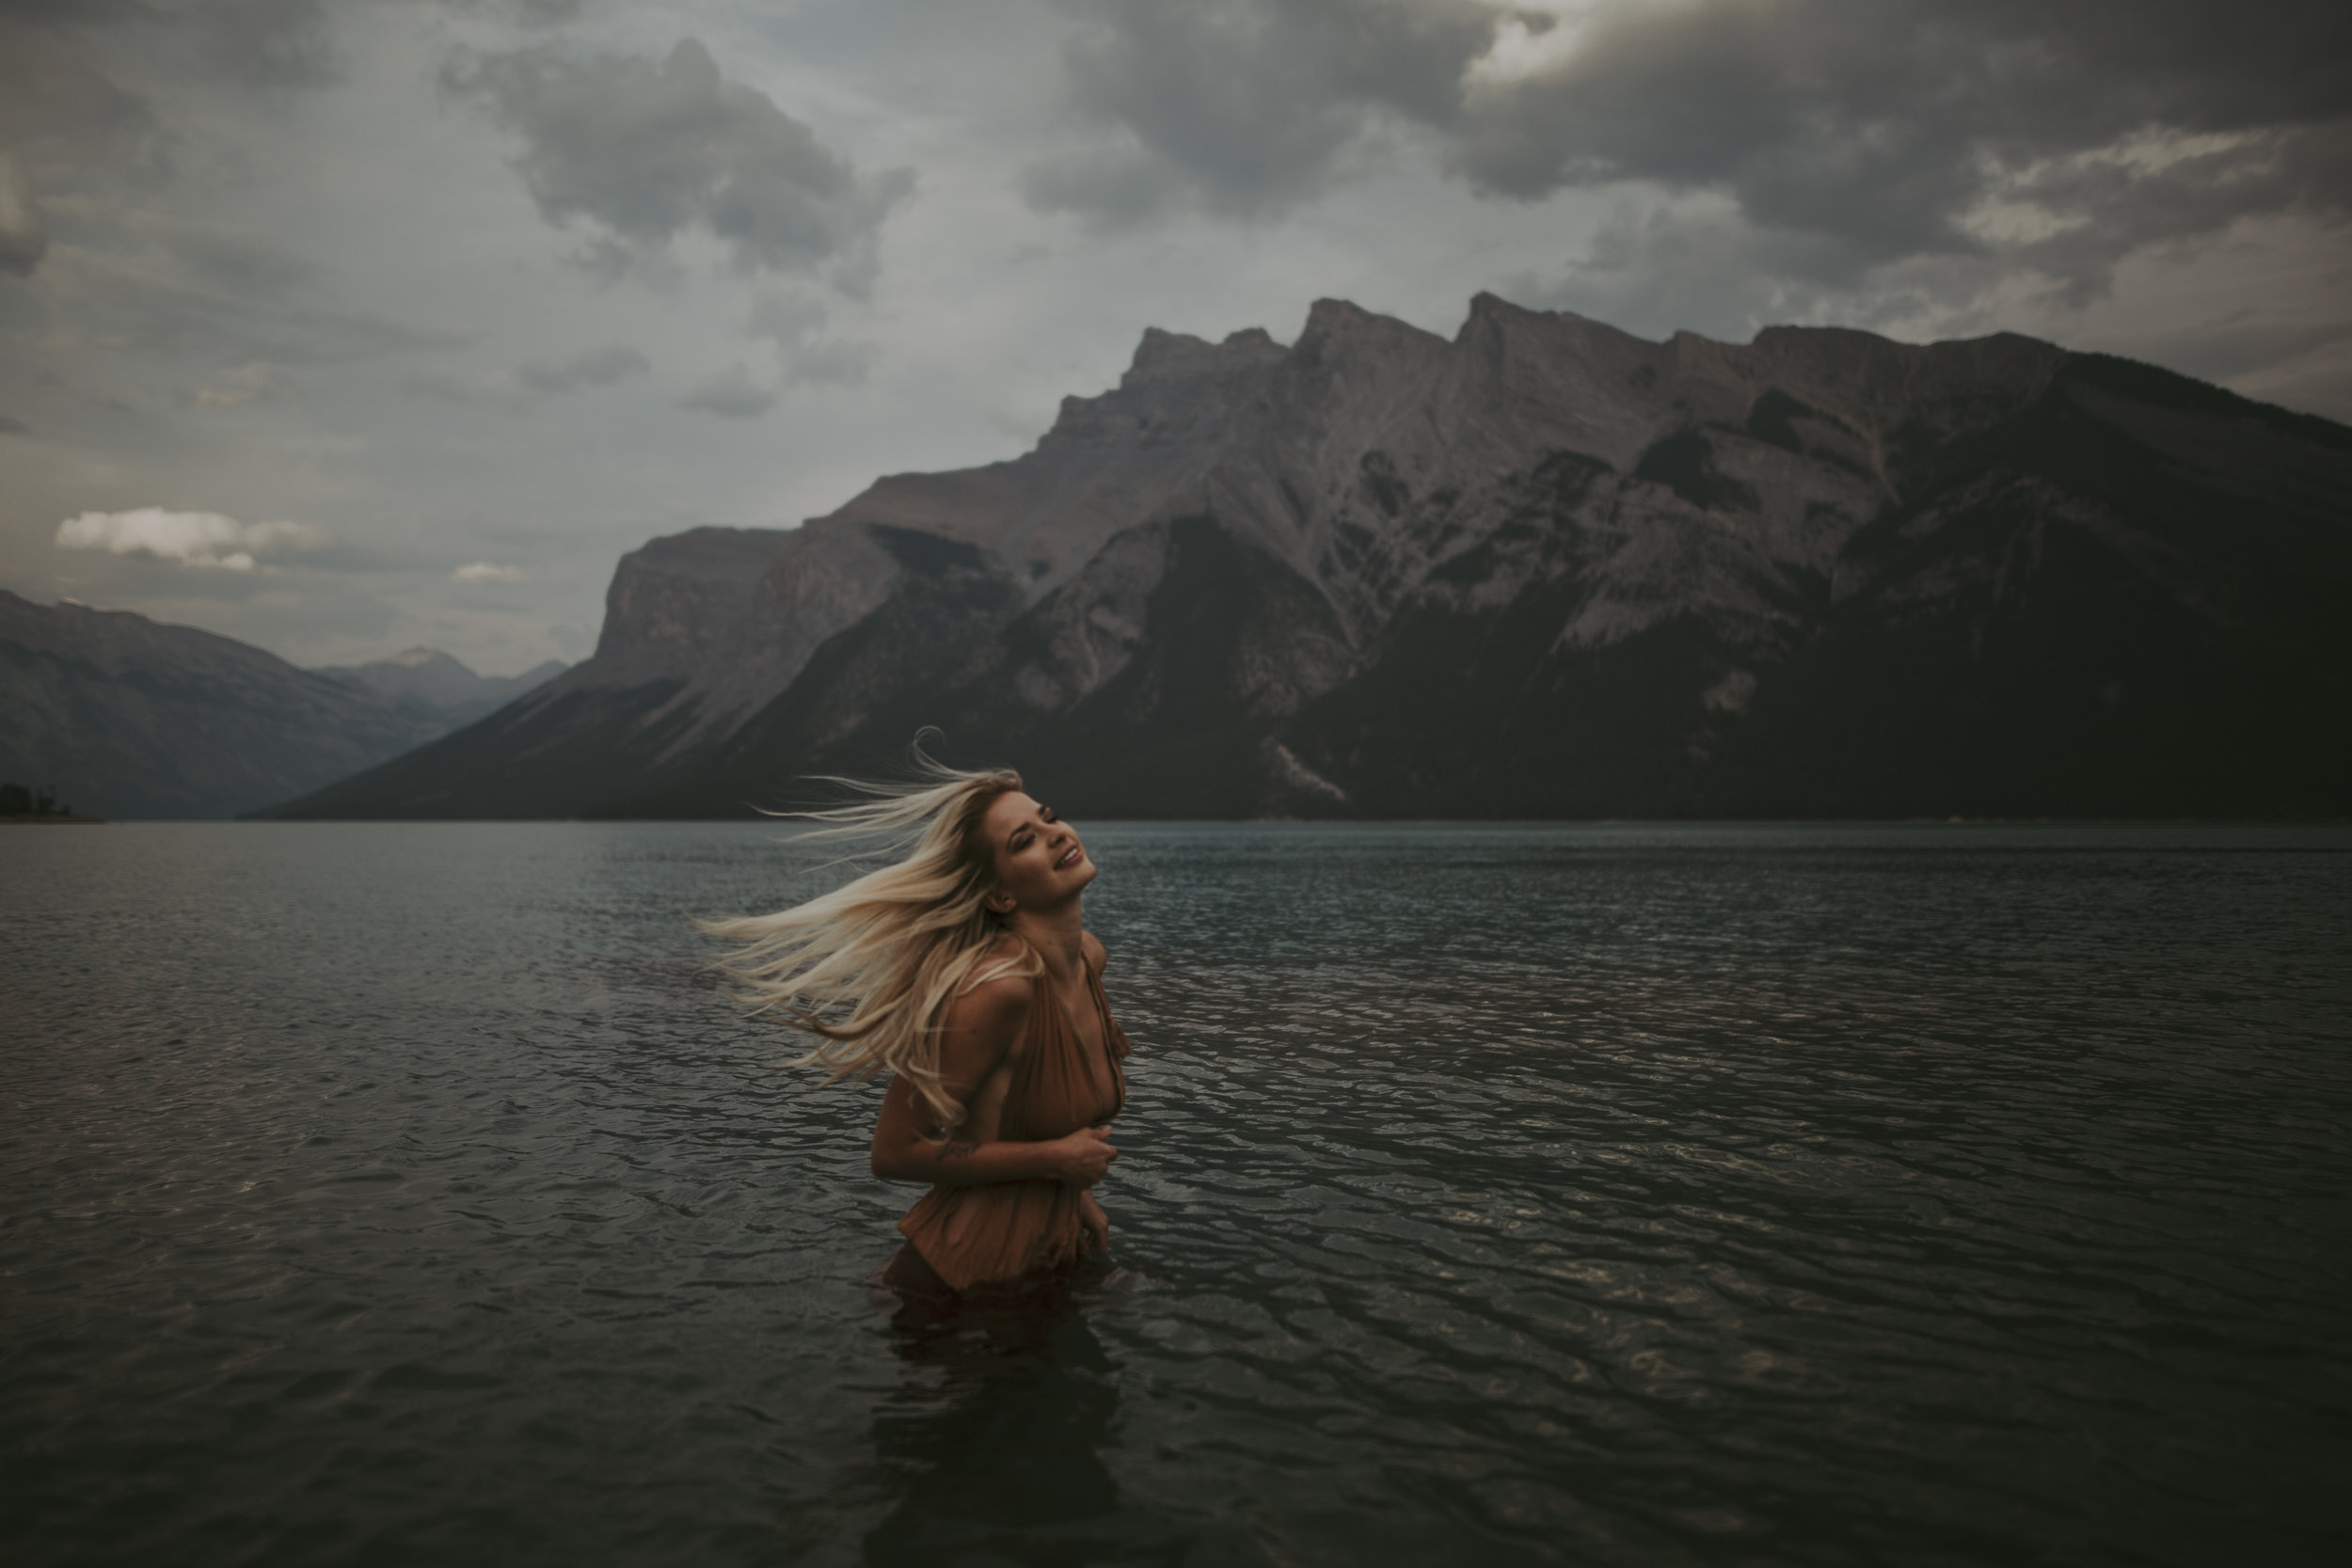 Banff Adventure Session, Best Instagram Photographers, Banff Portrait Photographers, Destination Model Photography, Canadian Rocky Mountain Portrait Adventure Session